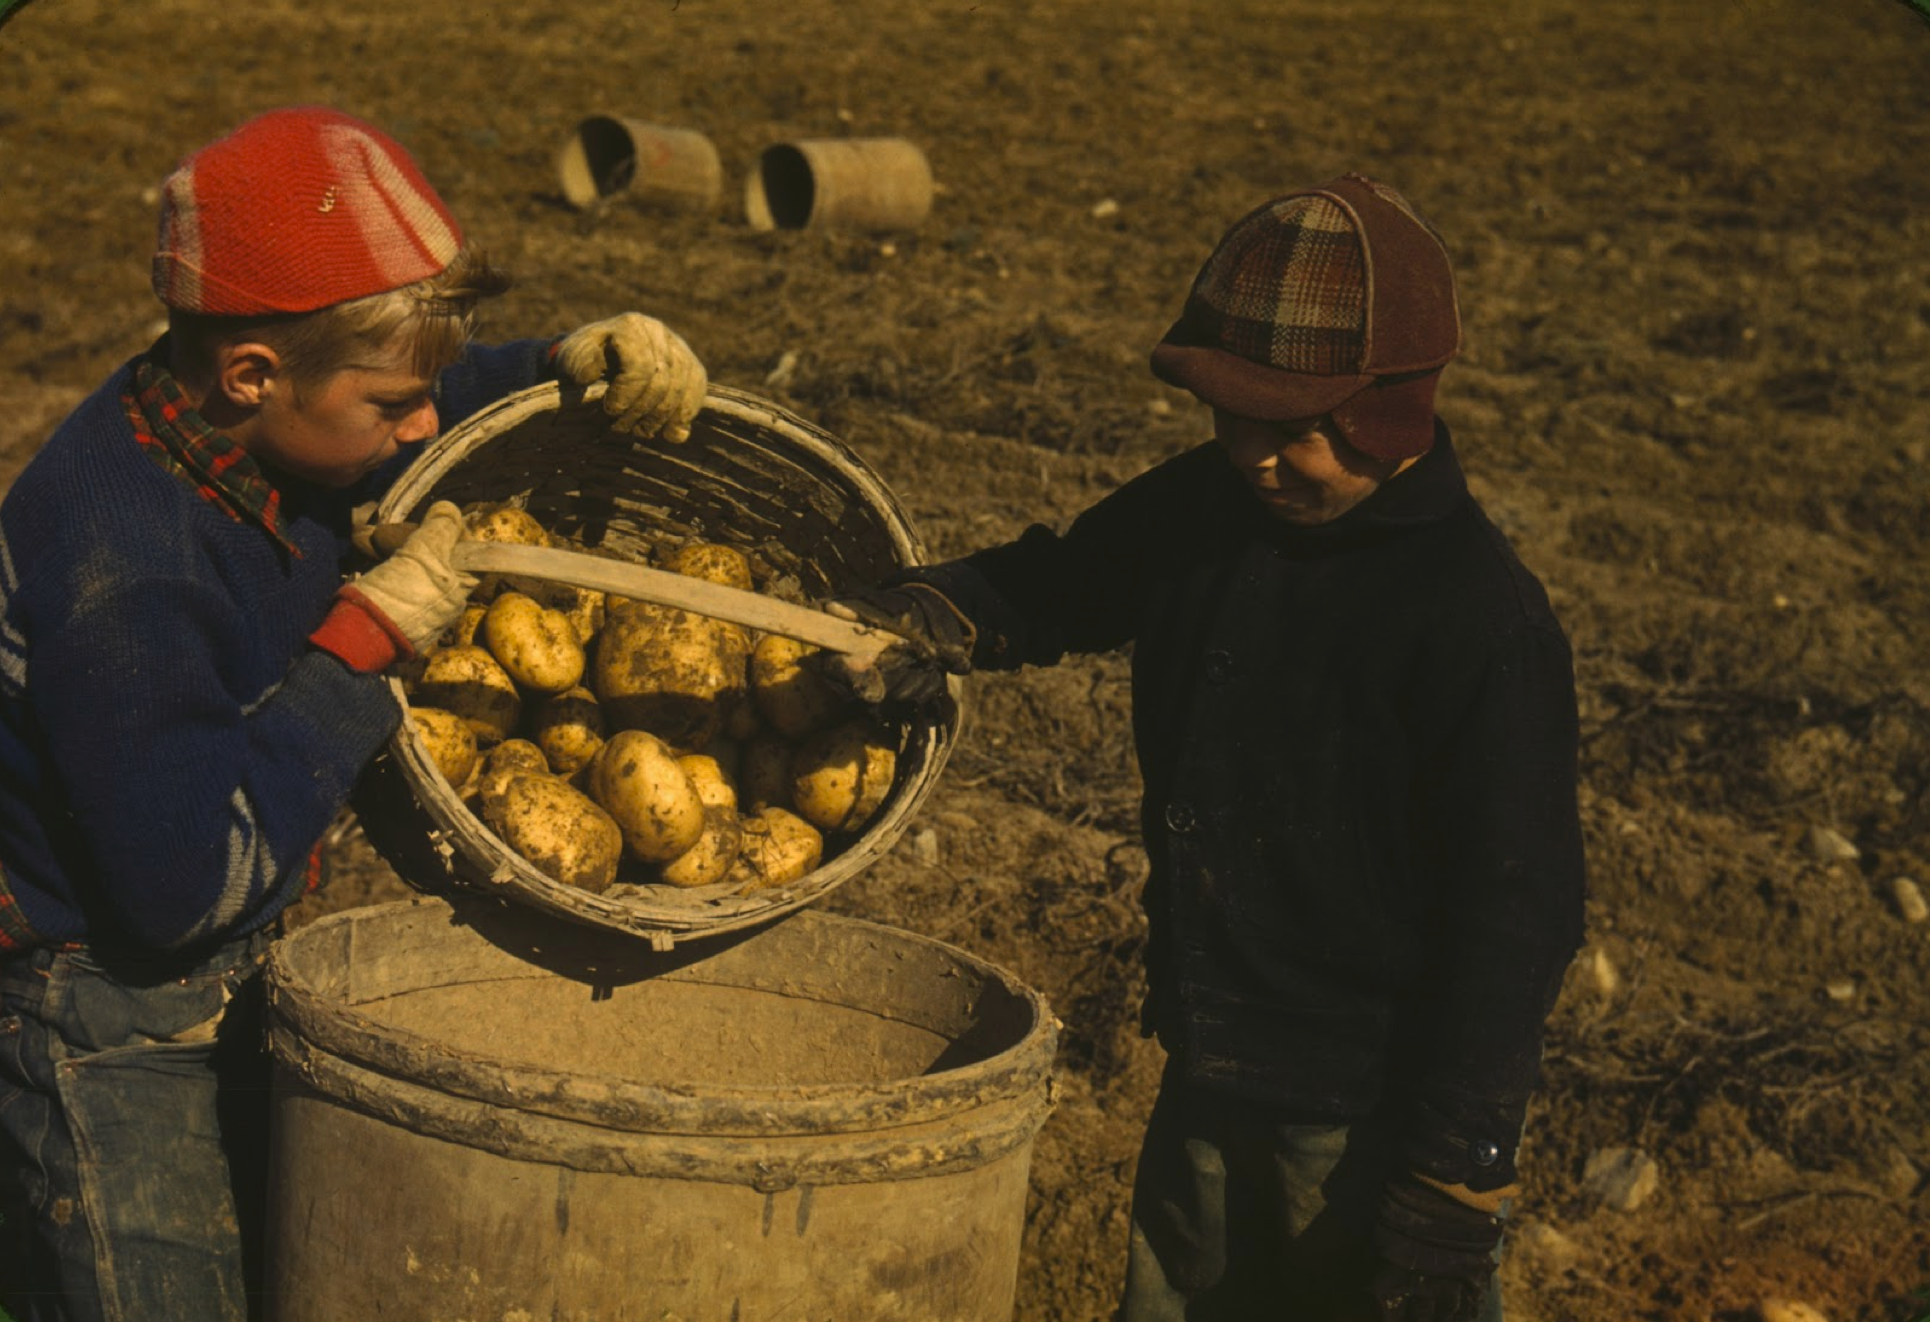 PHOTO CREDIT: A vintage photograph of children gathering potatoes on a farm near Caribou, Aroostook County, Maine. Photographer:  Jack Delano  .